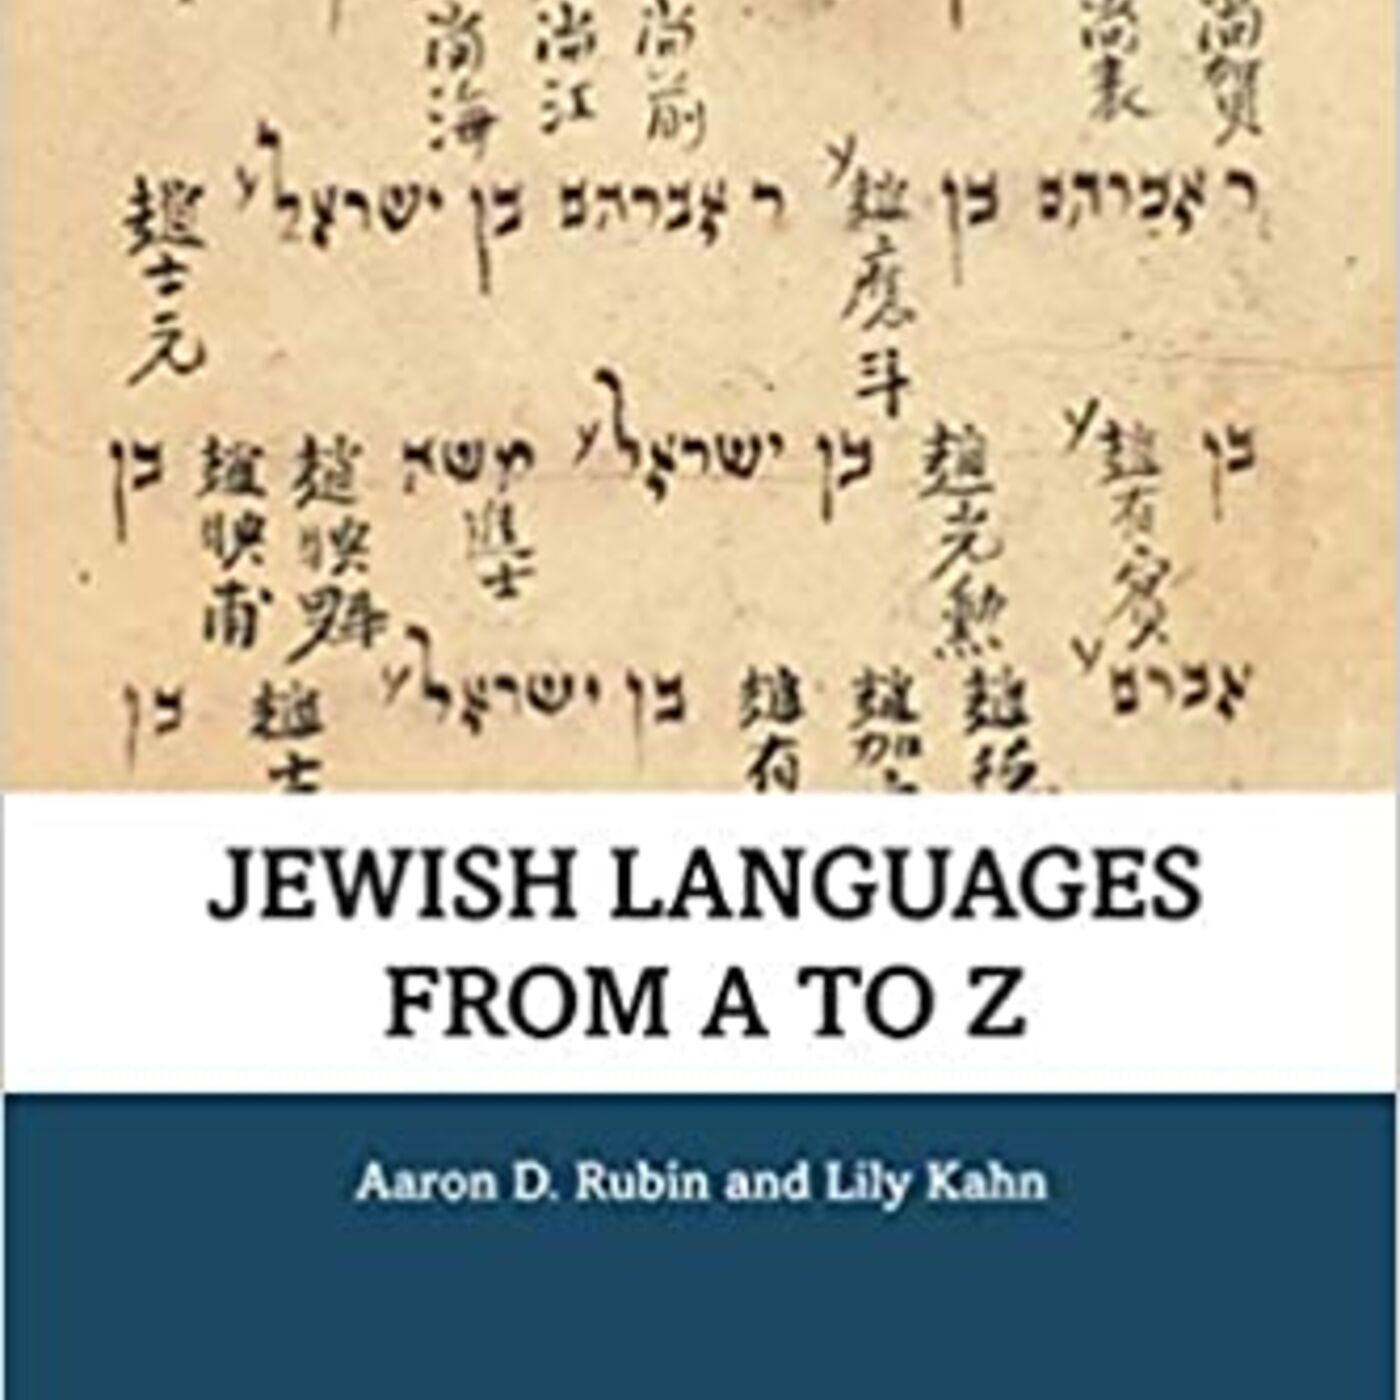 Jewish Languages From A to Z